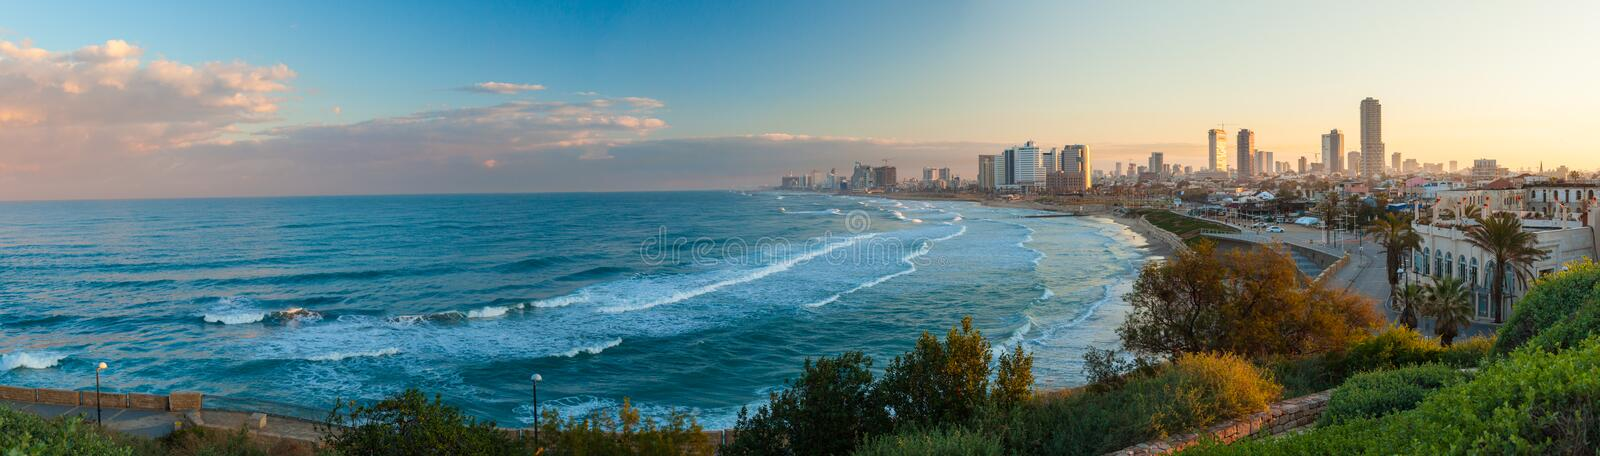 Morning view of the city from sea side stock image